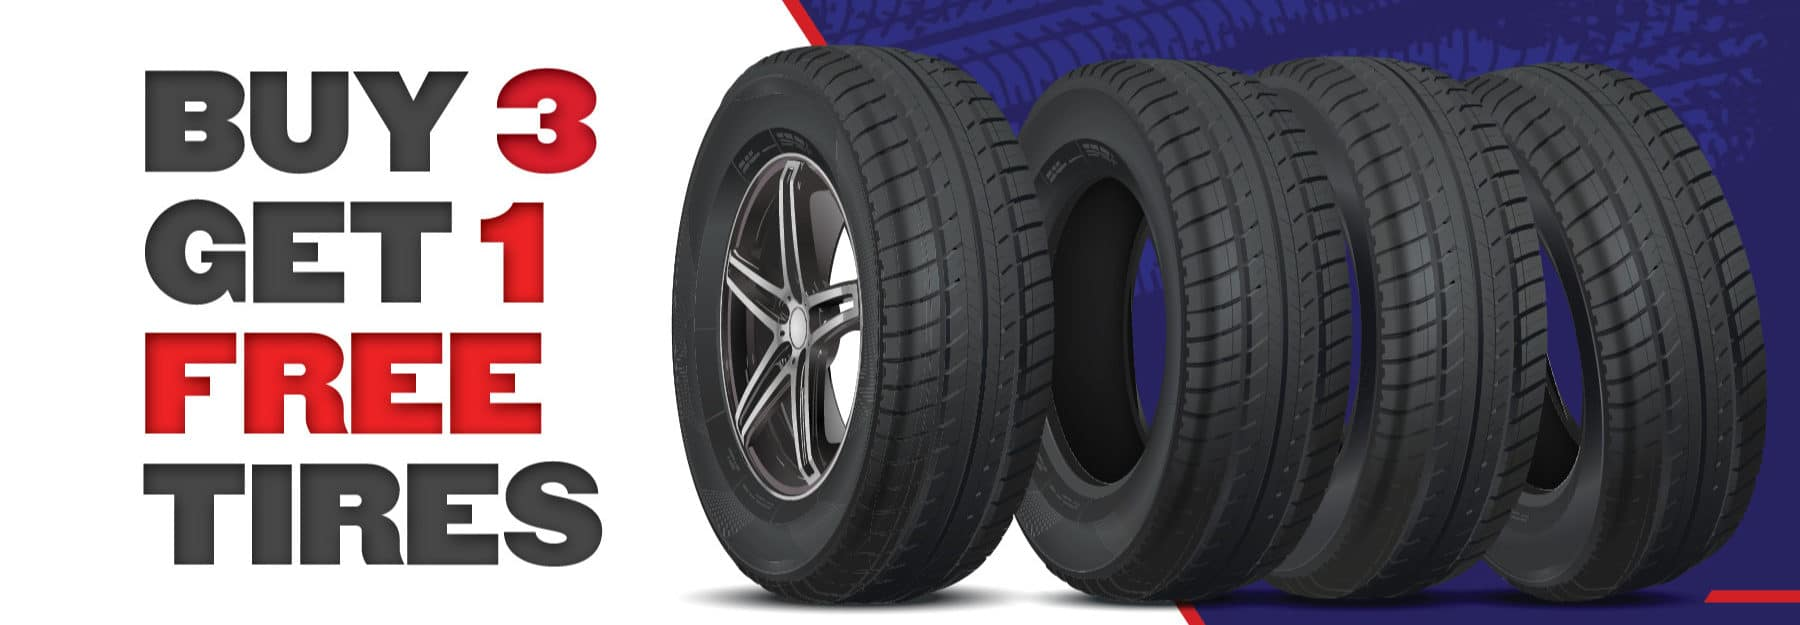 PHY Tire 1800X625